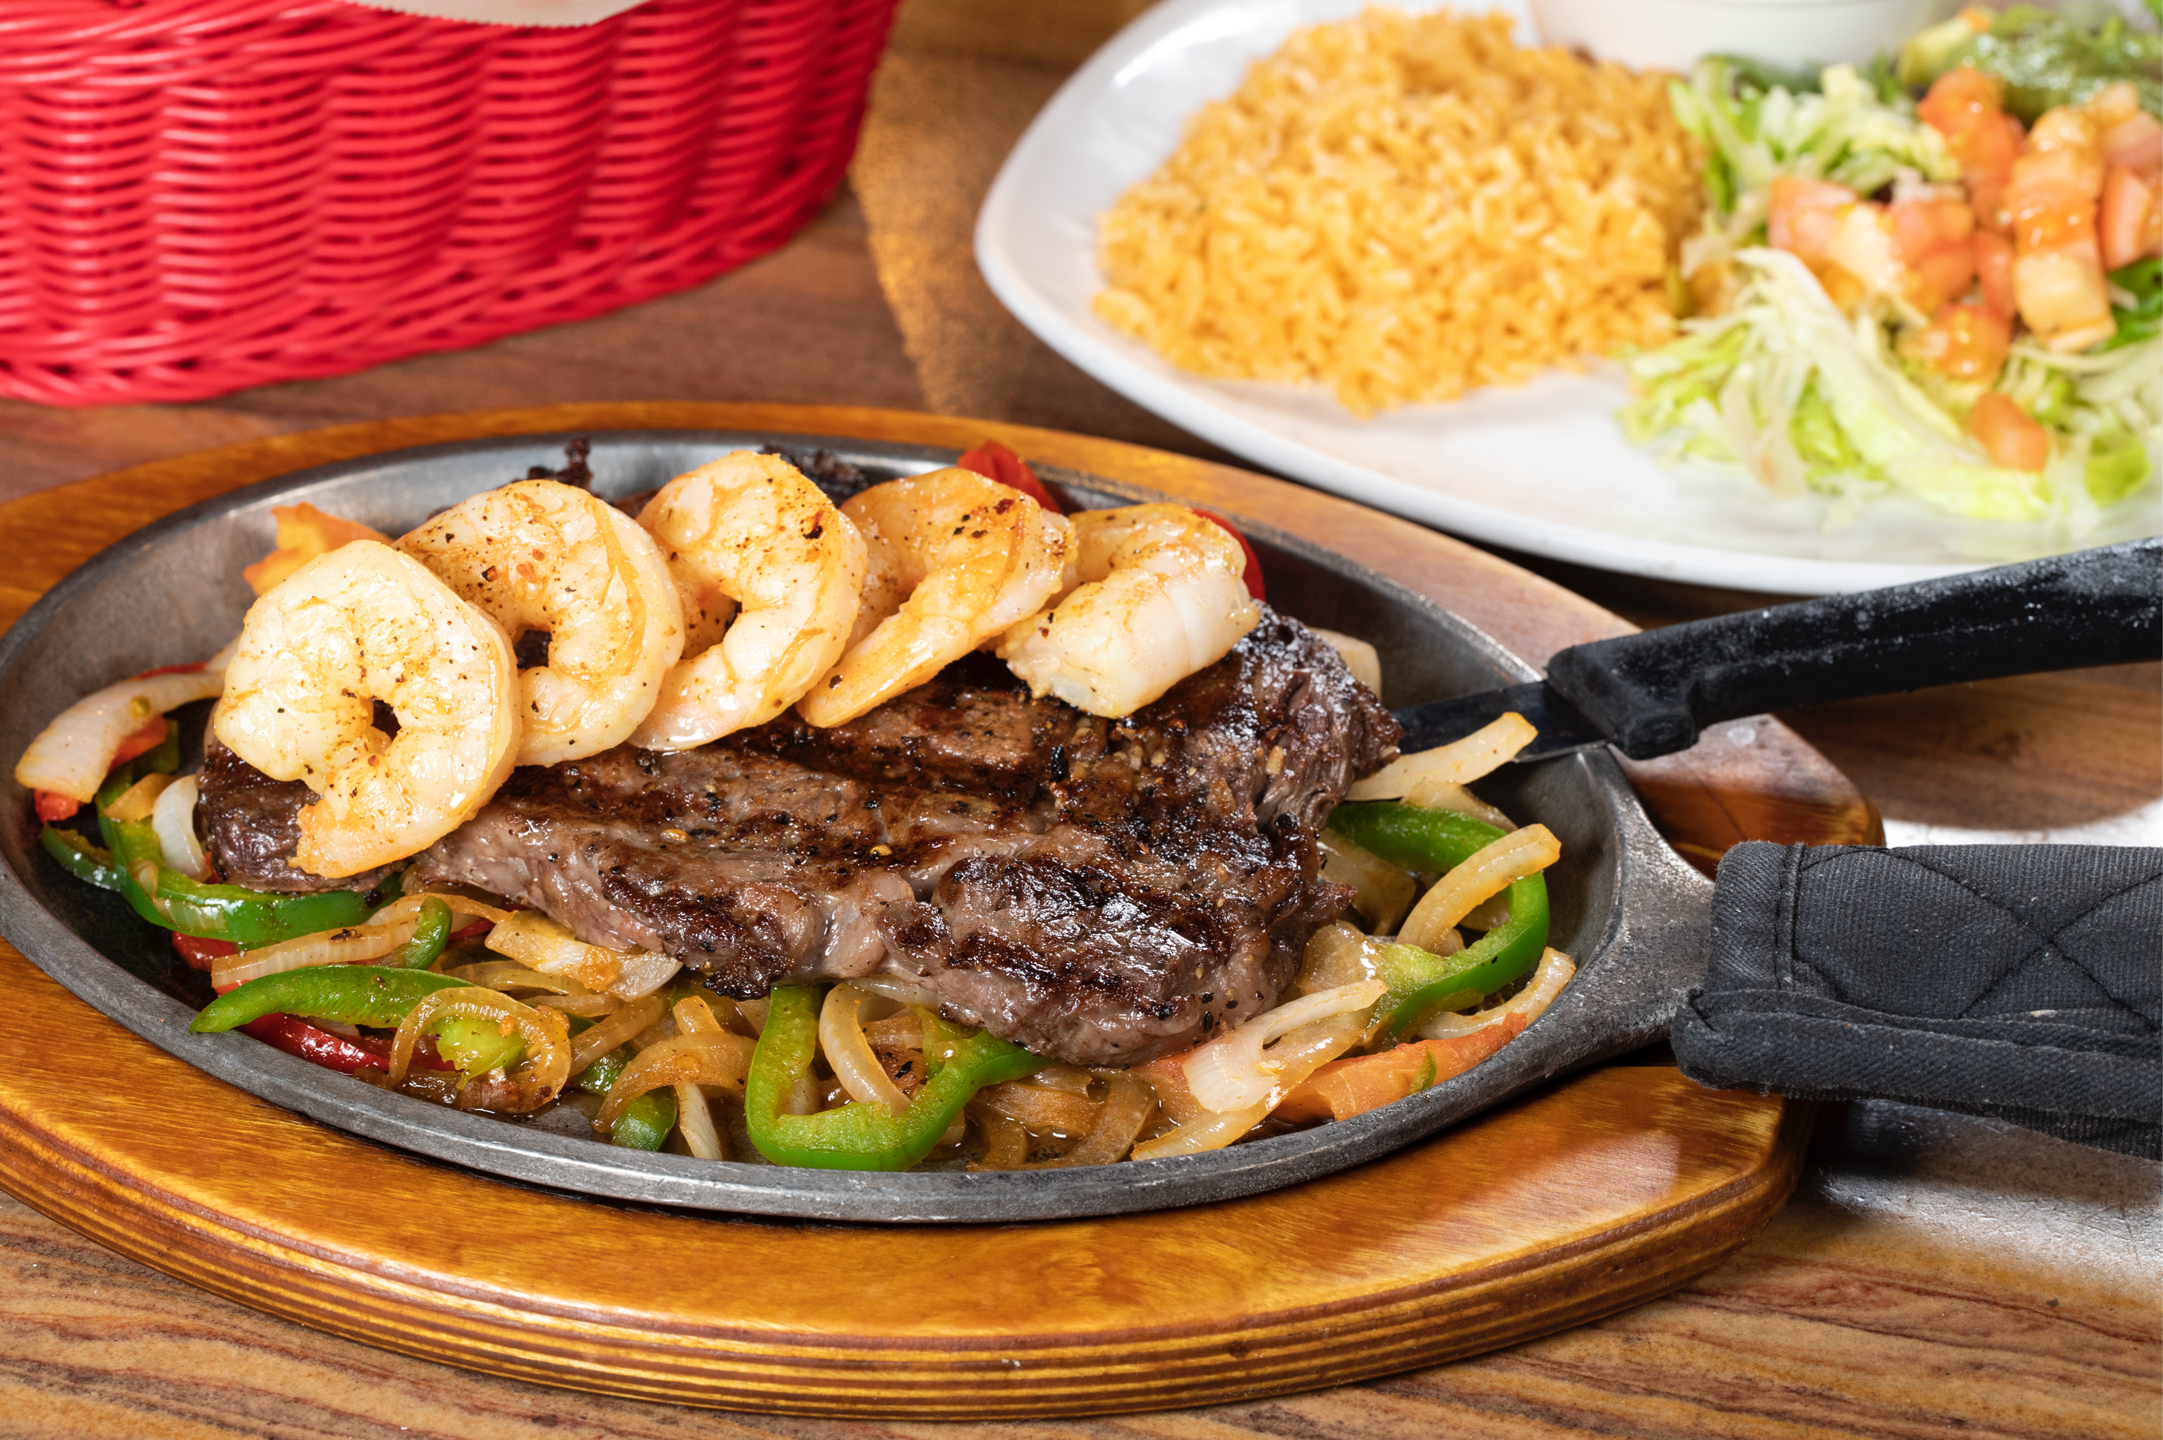 steak-and-shrimp-fajita.jpg